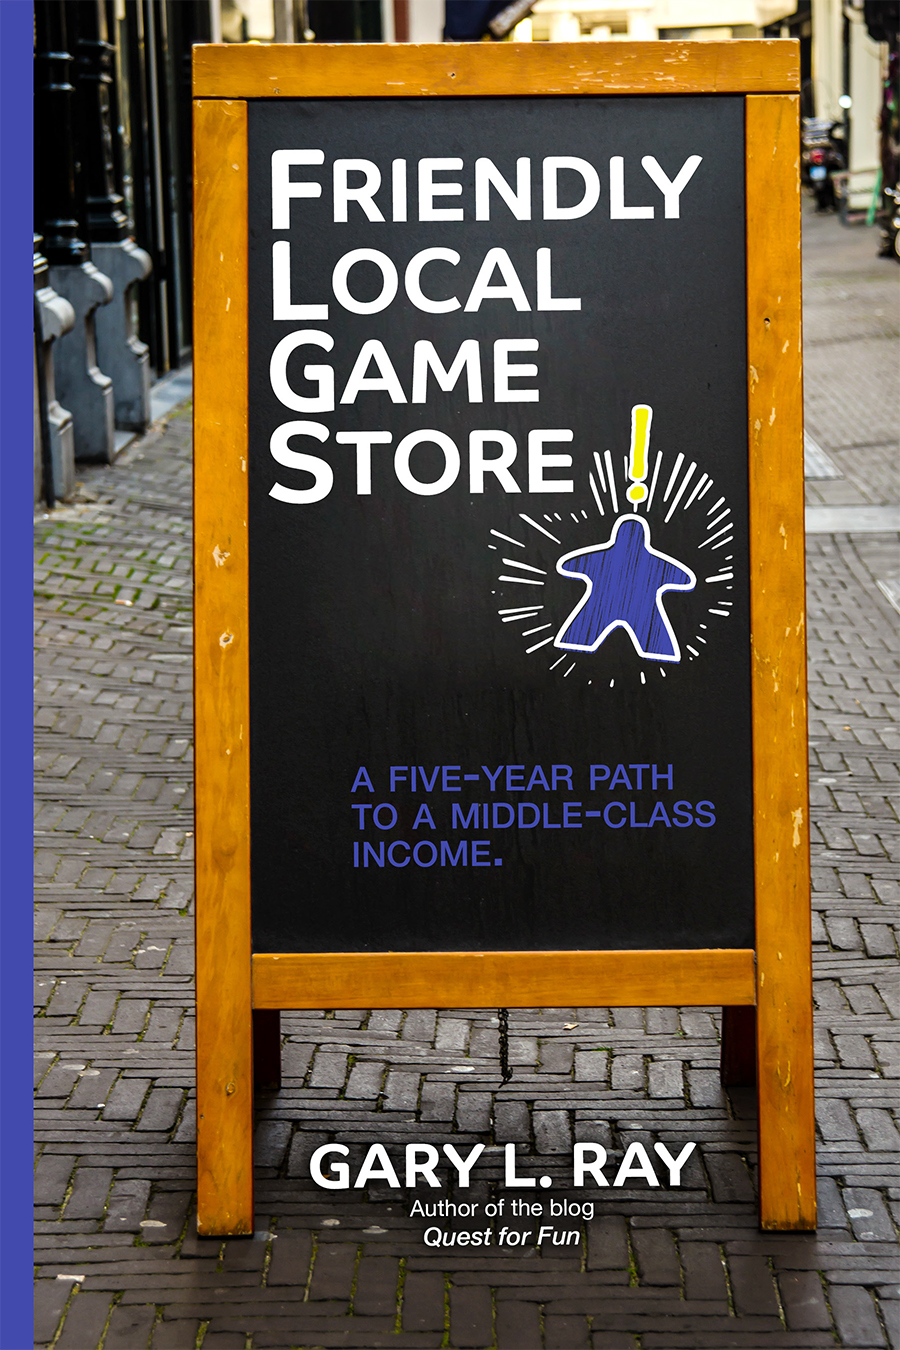 GTM #219 - An Excerpt From Friendly Local Game Store